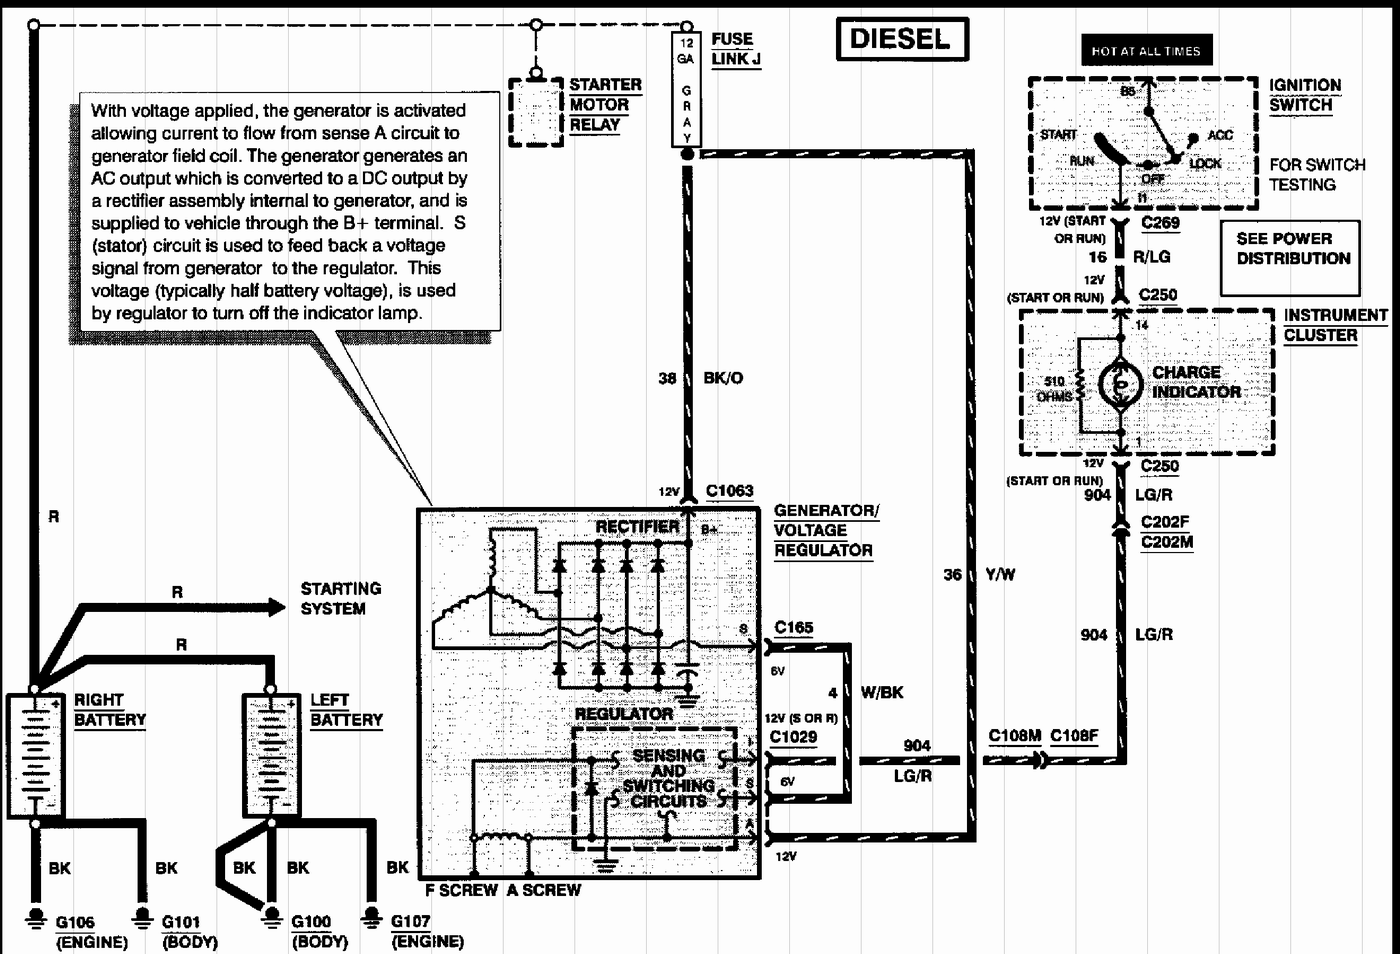 ford 60 powerstroke engine diagram 97 powerstroke engine diagram i need a wiring diagram for a 97 f350 7.3 powerstroke with ... | trucks | diagram, powerstroke ... #8